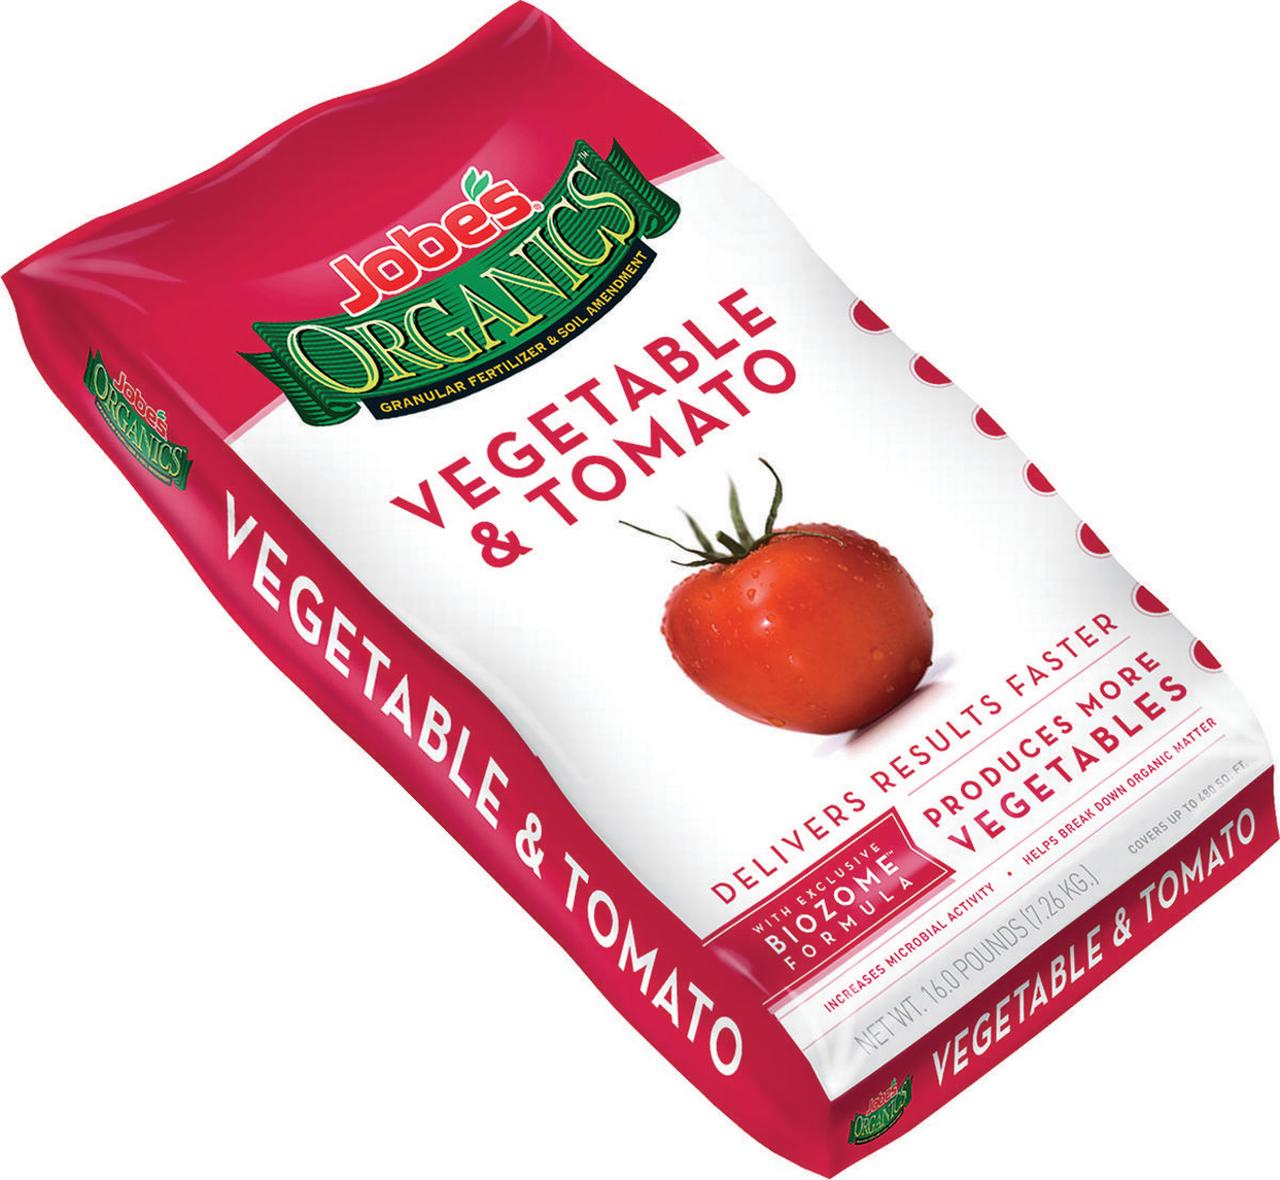 Easy Gardener 09023 Tomato and Vegetable Fertilizer, 16 lb, Brown, Granular